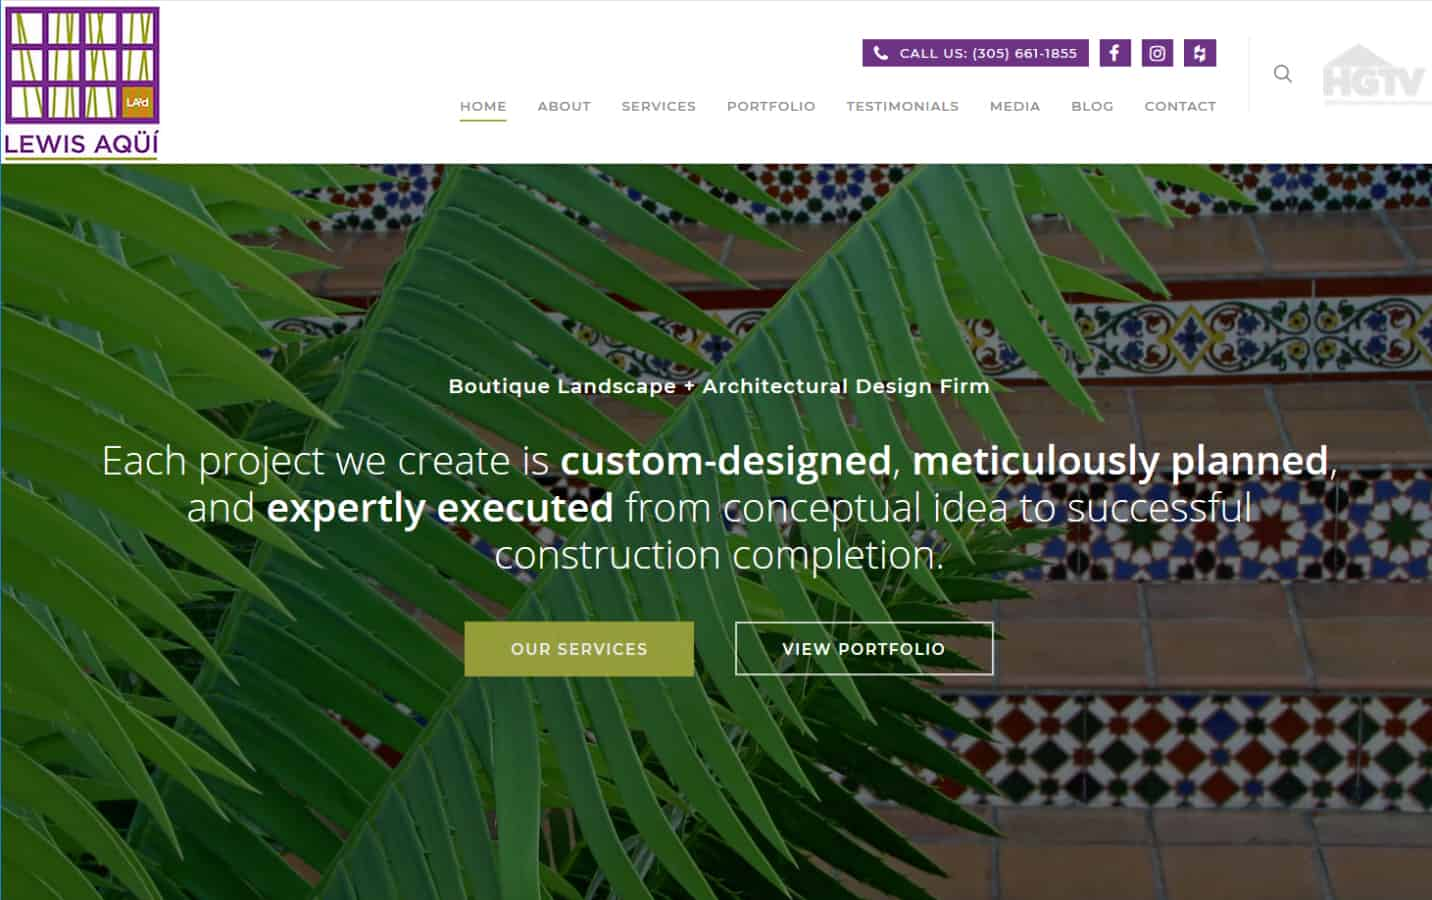 Lewis Aqui Miami Landscape Architecture Website by iSatisfy.com